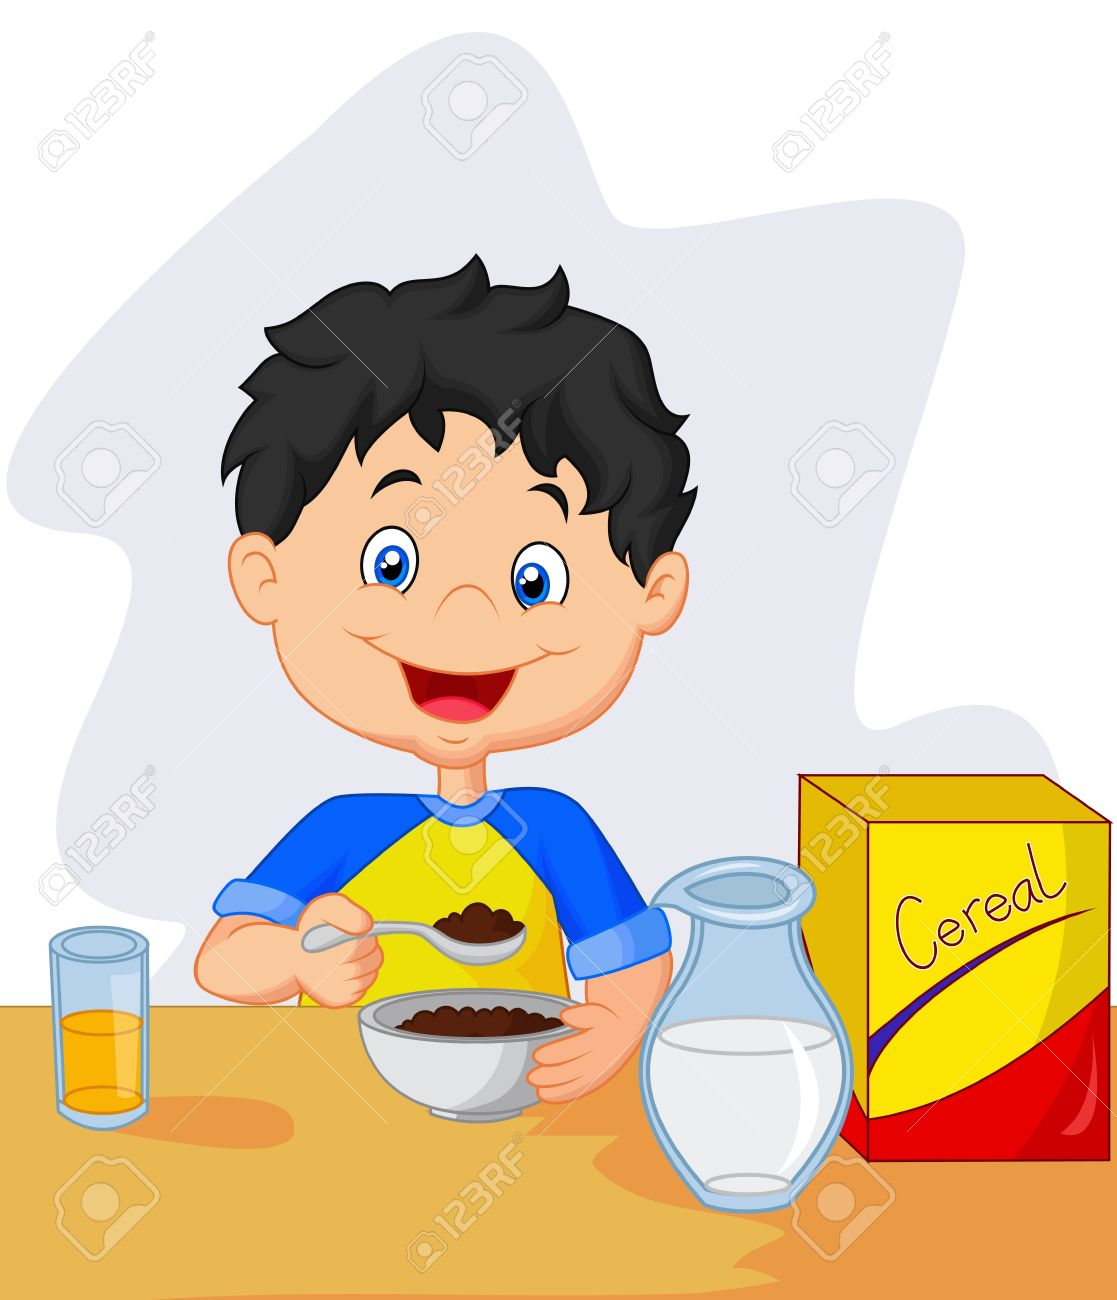 Breakfast clipart little boy Cereals Boy boy Having breakfast